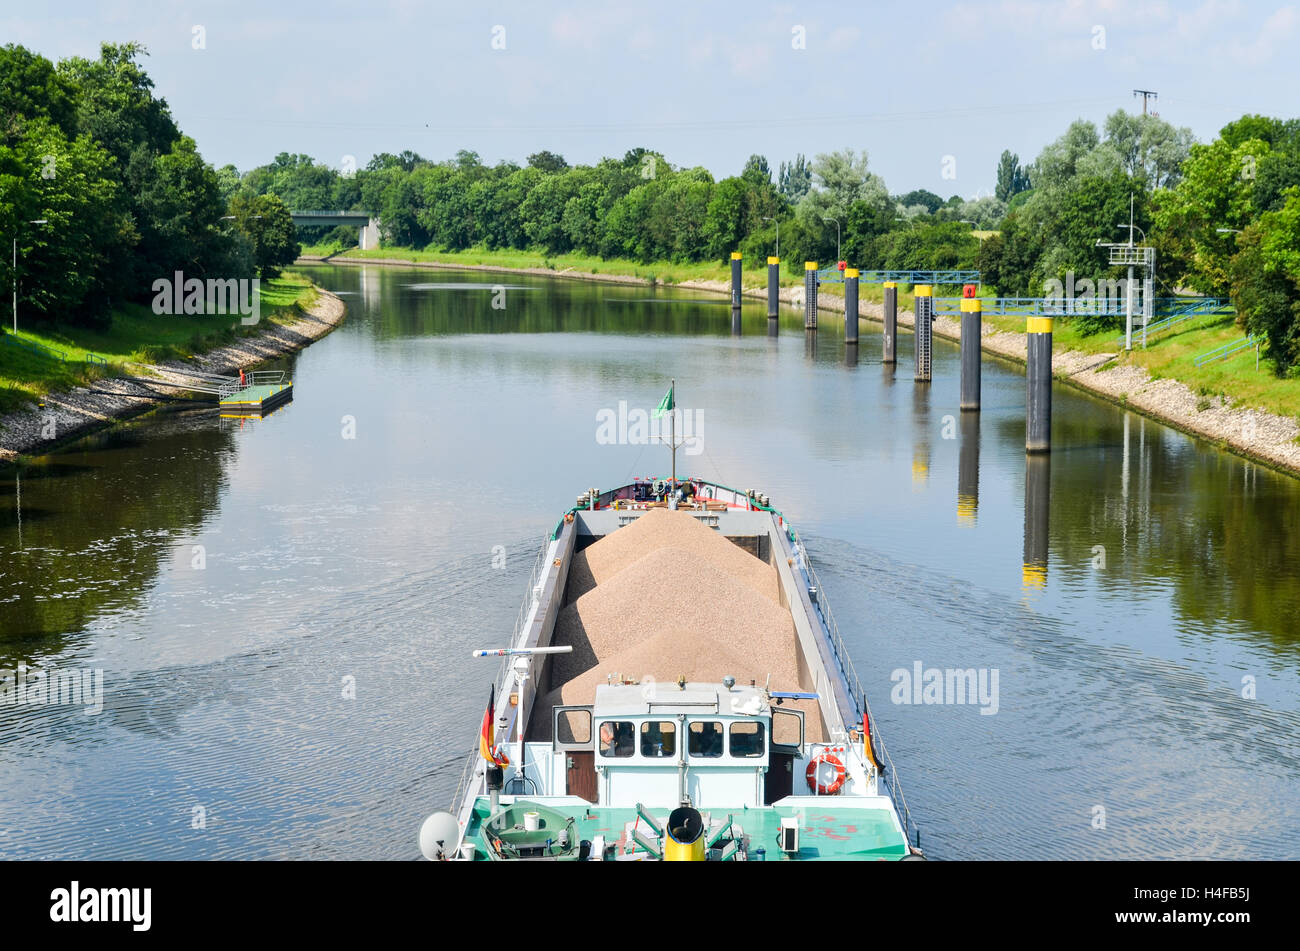 Barge passing a lock on a canal of the Weser river in Germany - Stock Image